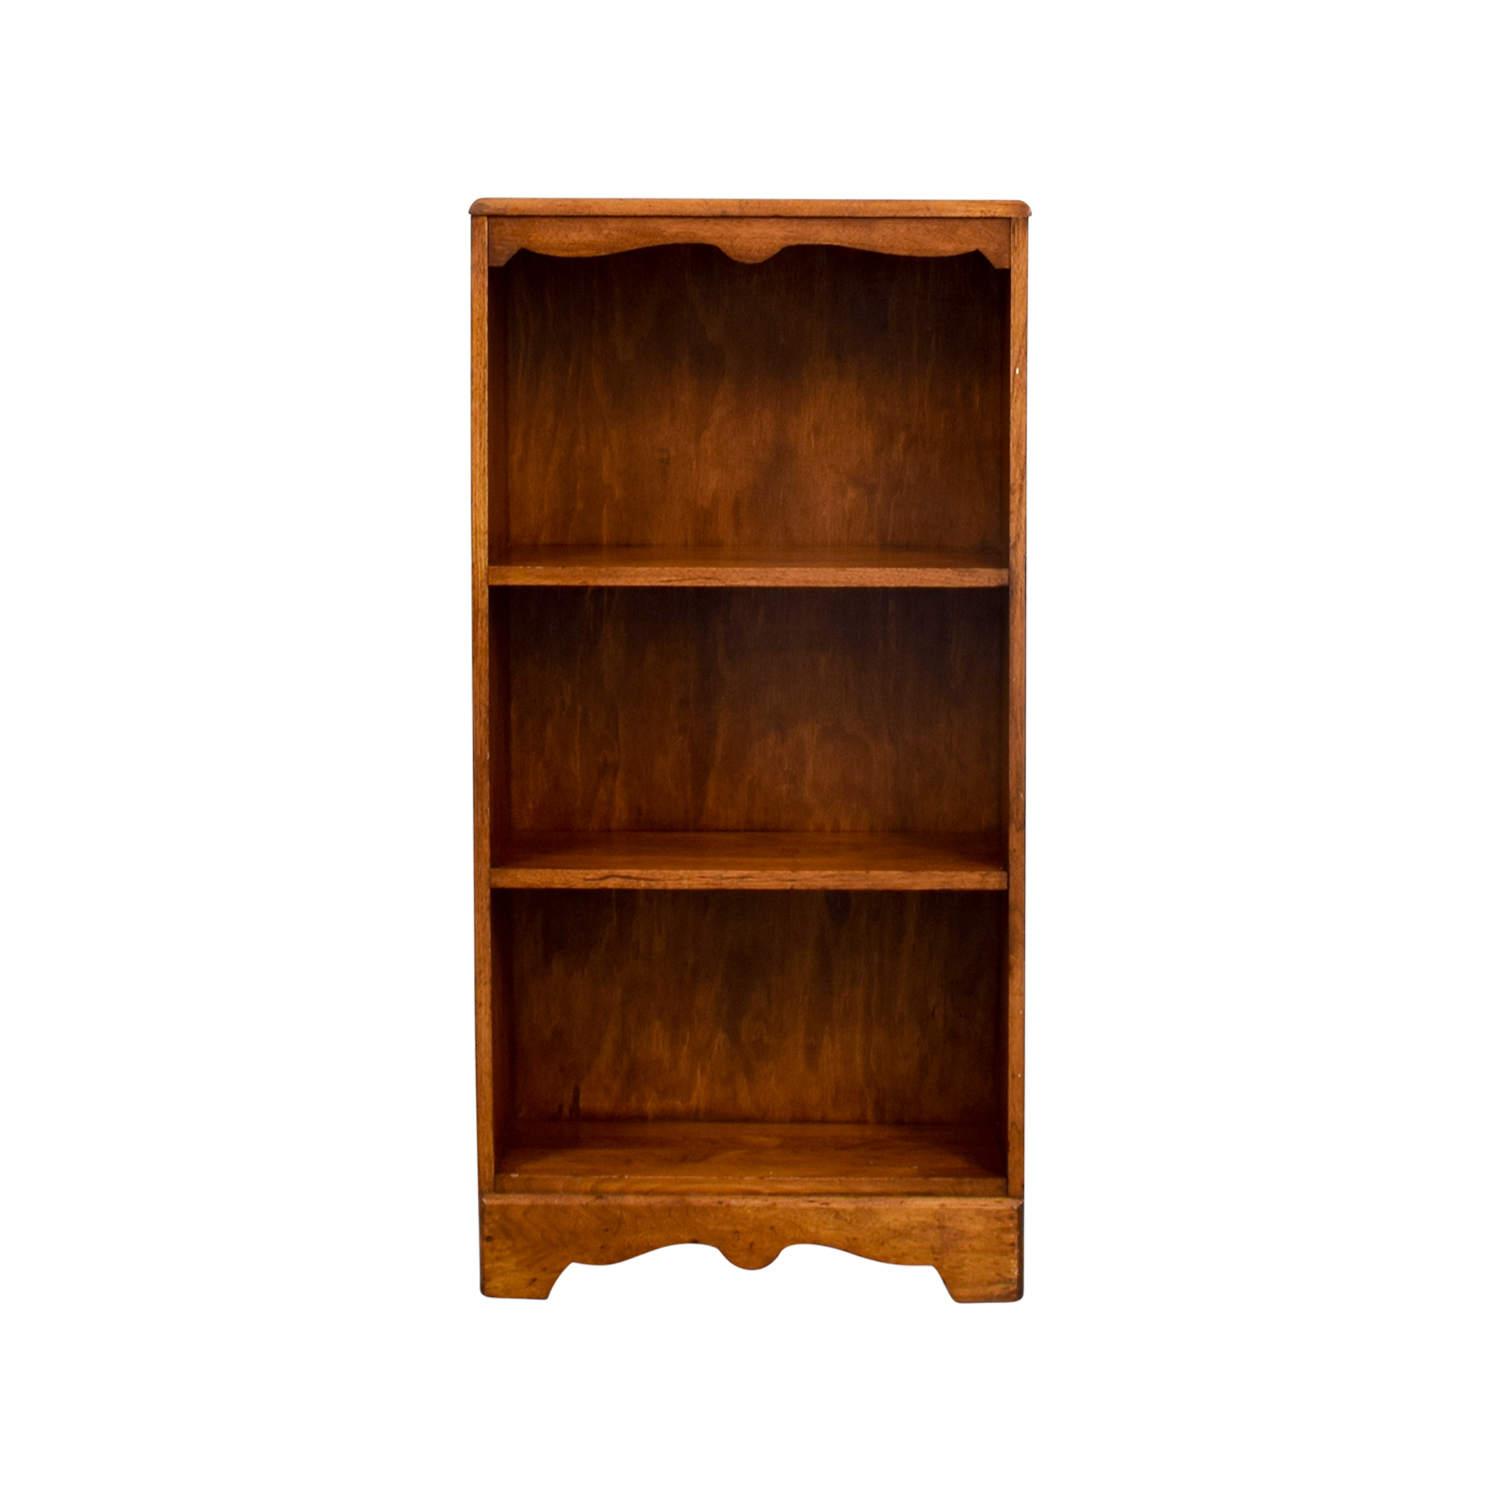 shop Dovetailed Wood Standing Bookshelf Storage